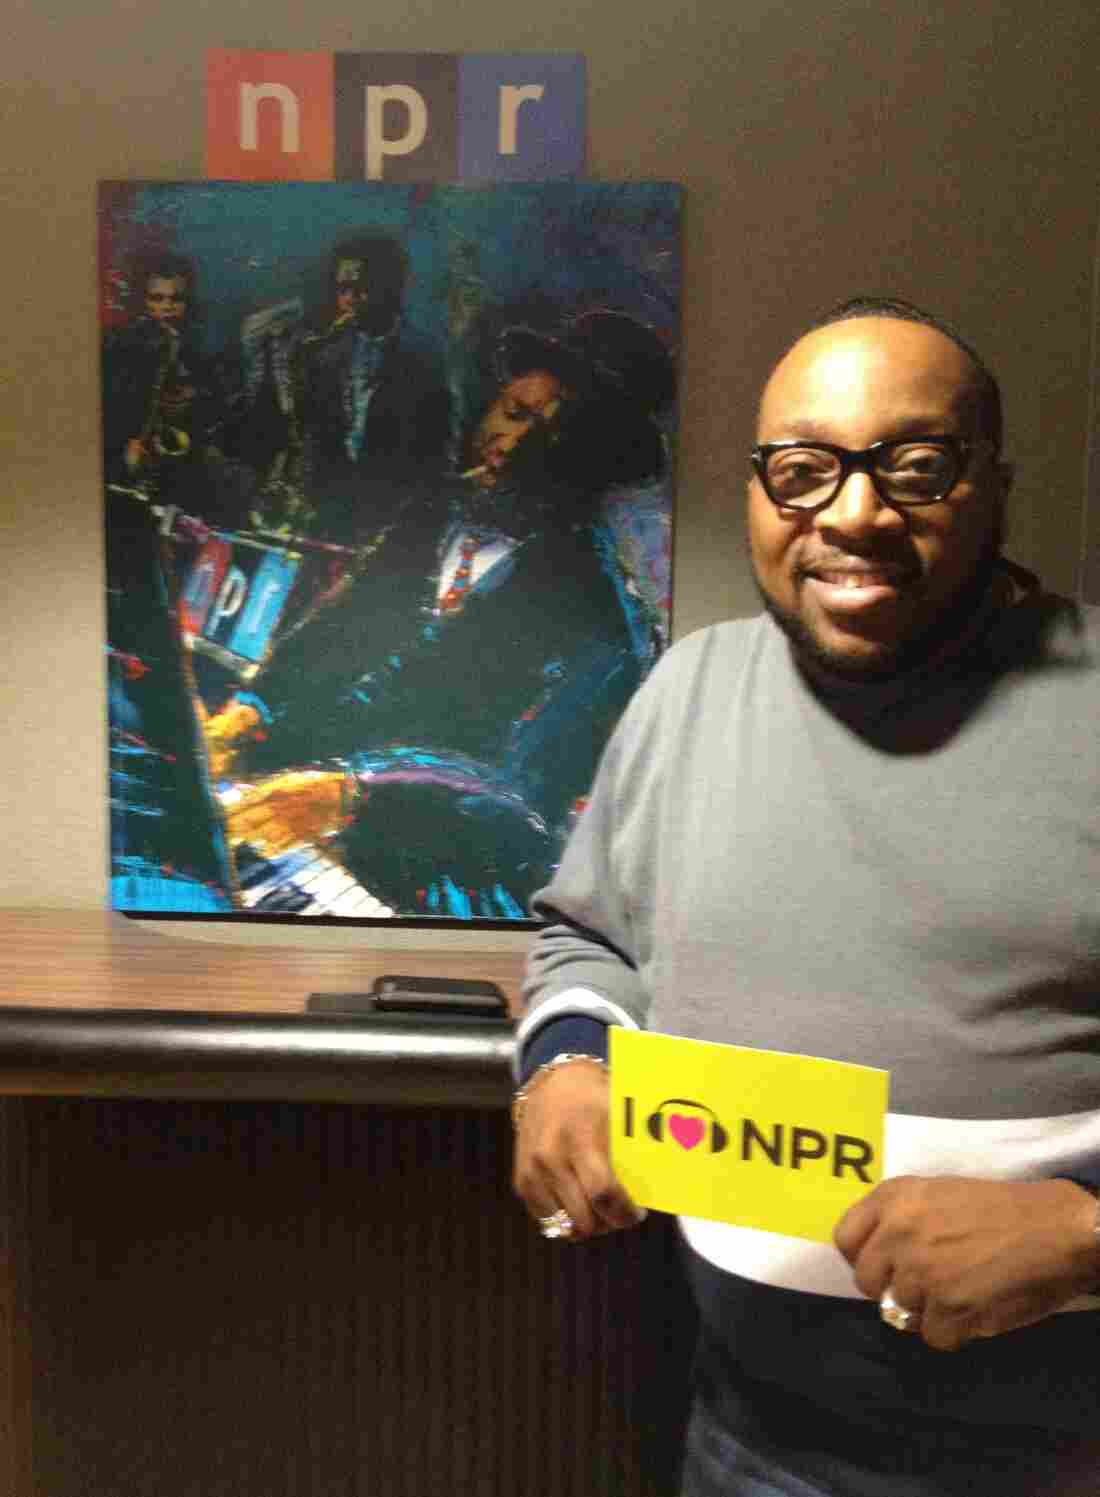 Marvin Sapp at NPR HQ in DC